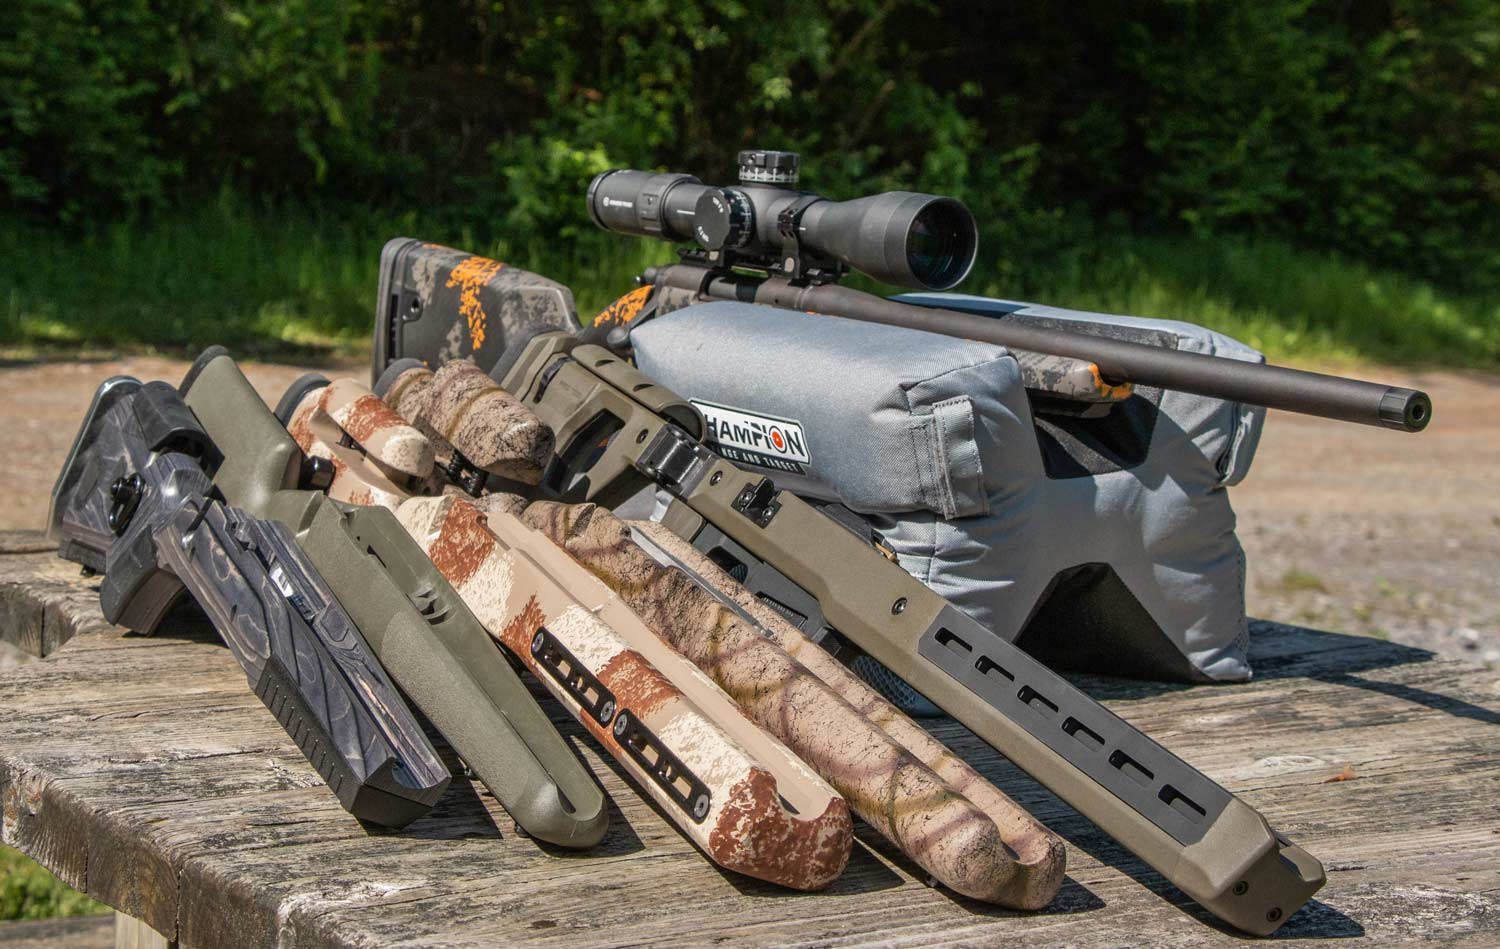 A lineup of aftermarket rifle stocks